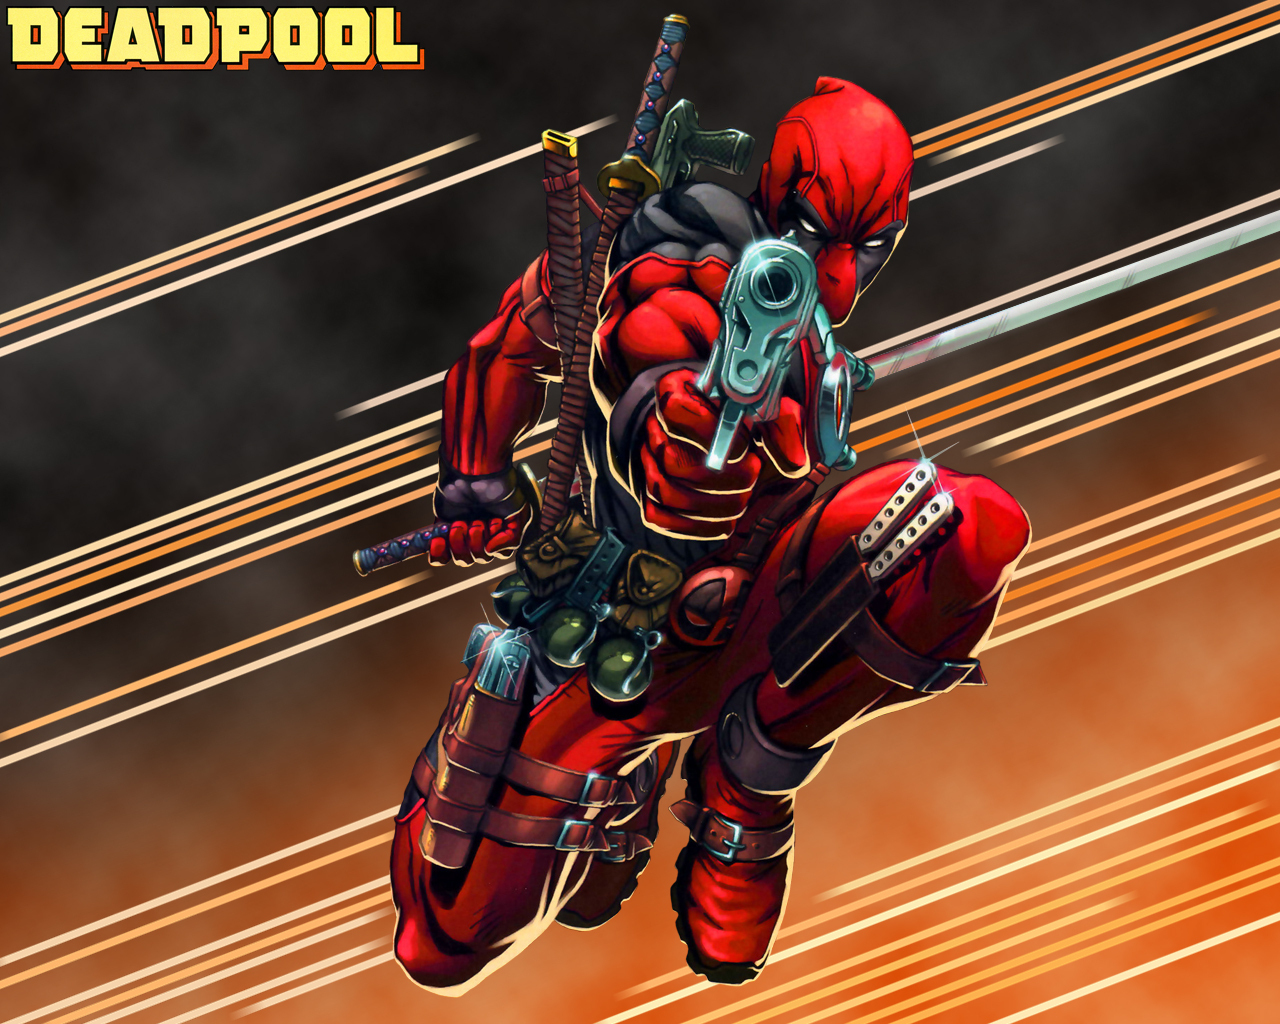 Deadpool - Deadpool Wallpaper (8636527) - Fanpop